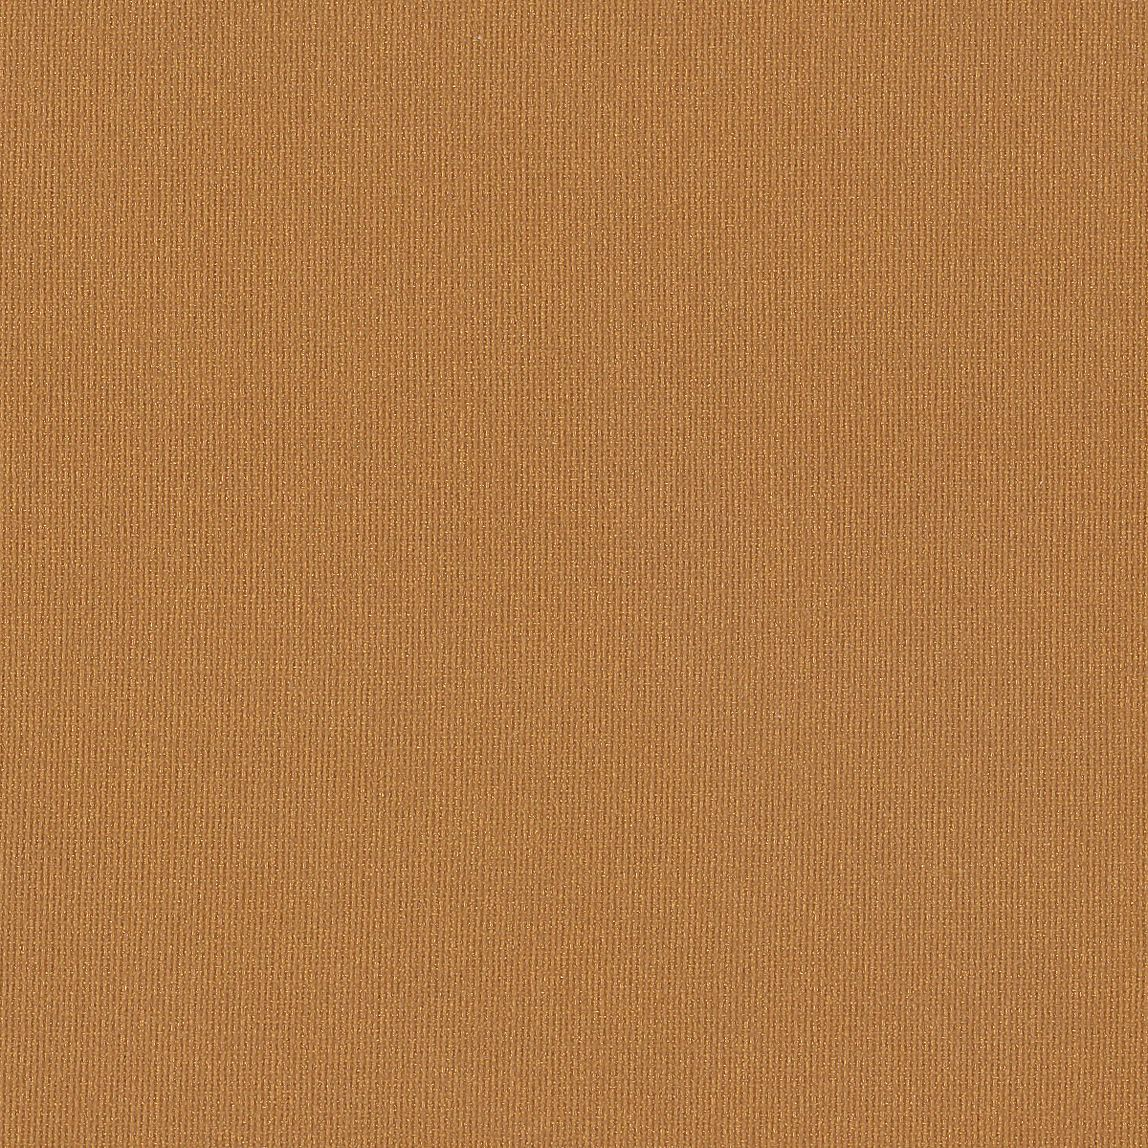 Silvertex Vinyl Chestnut Swatch